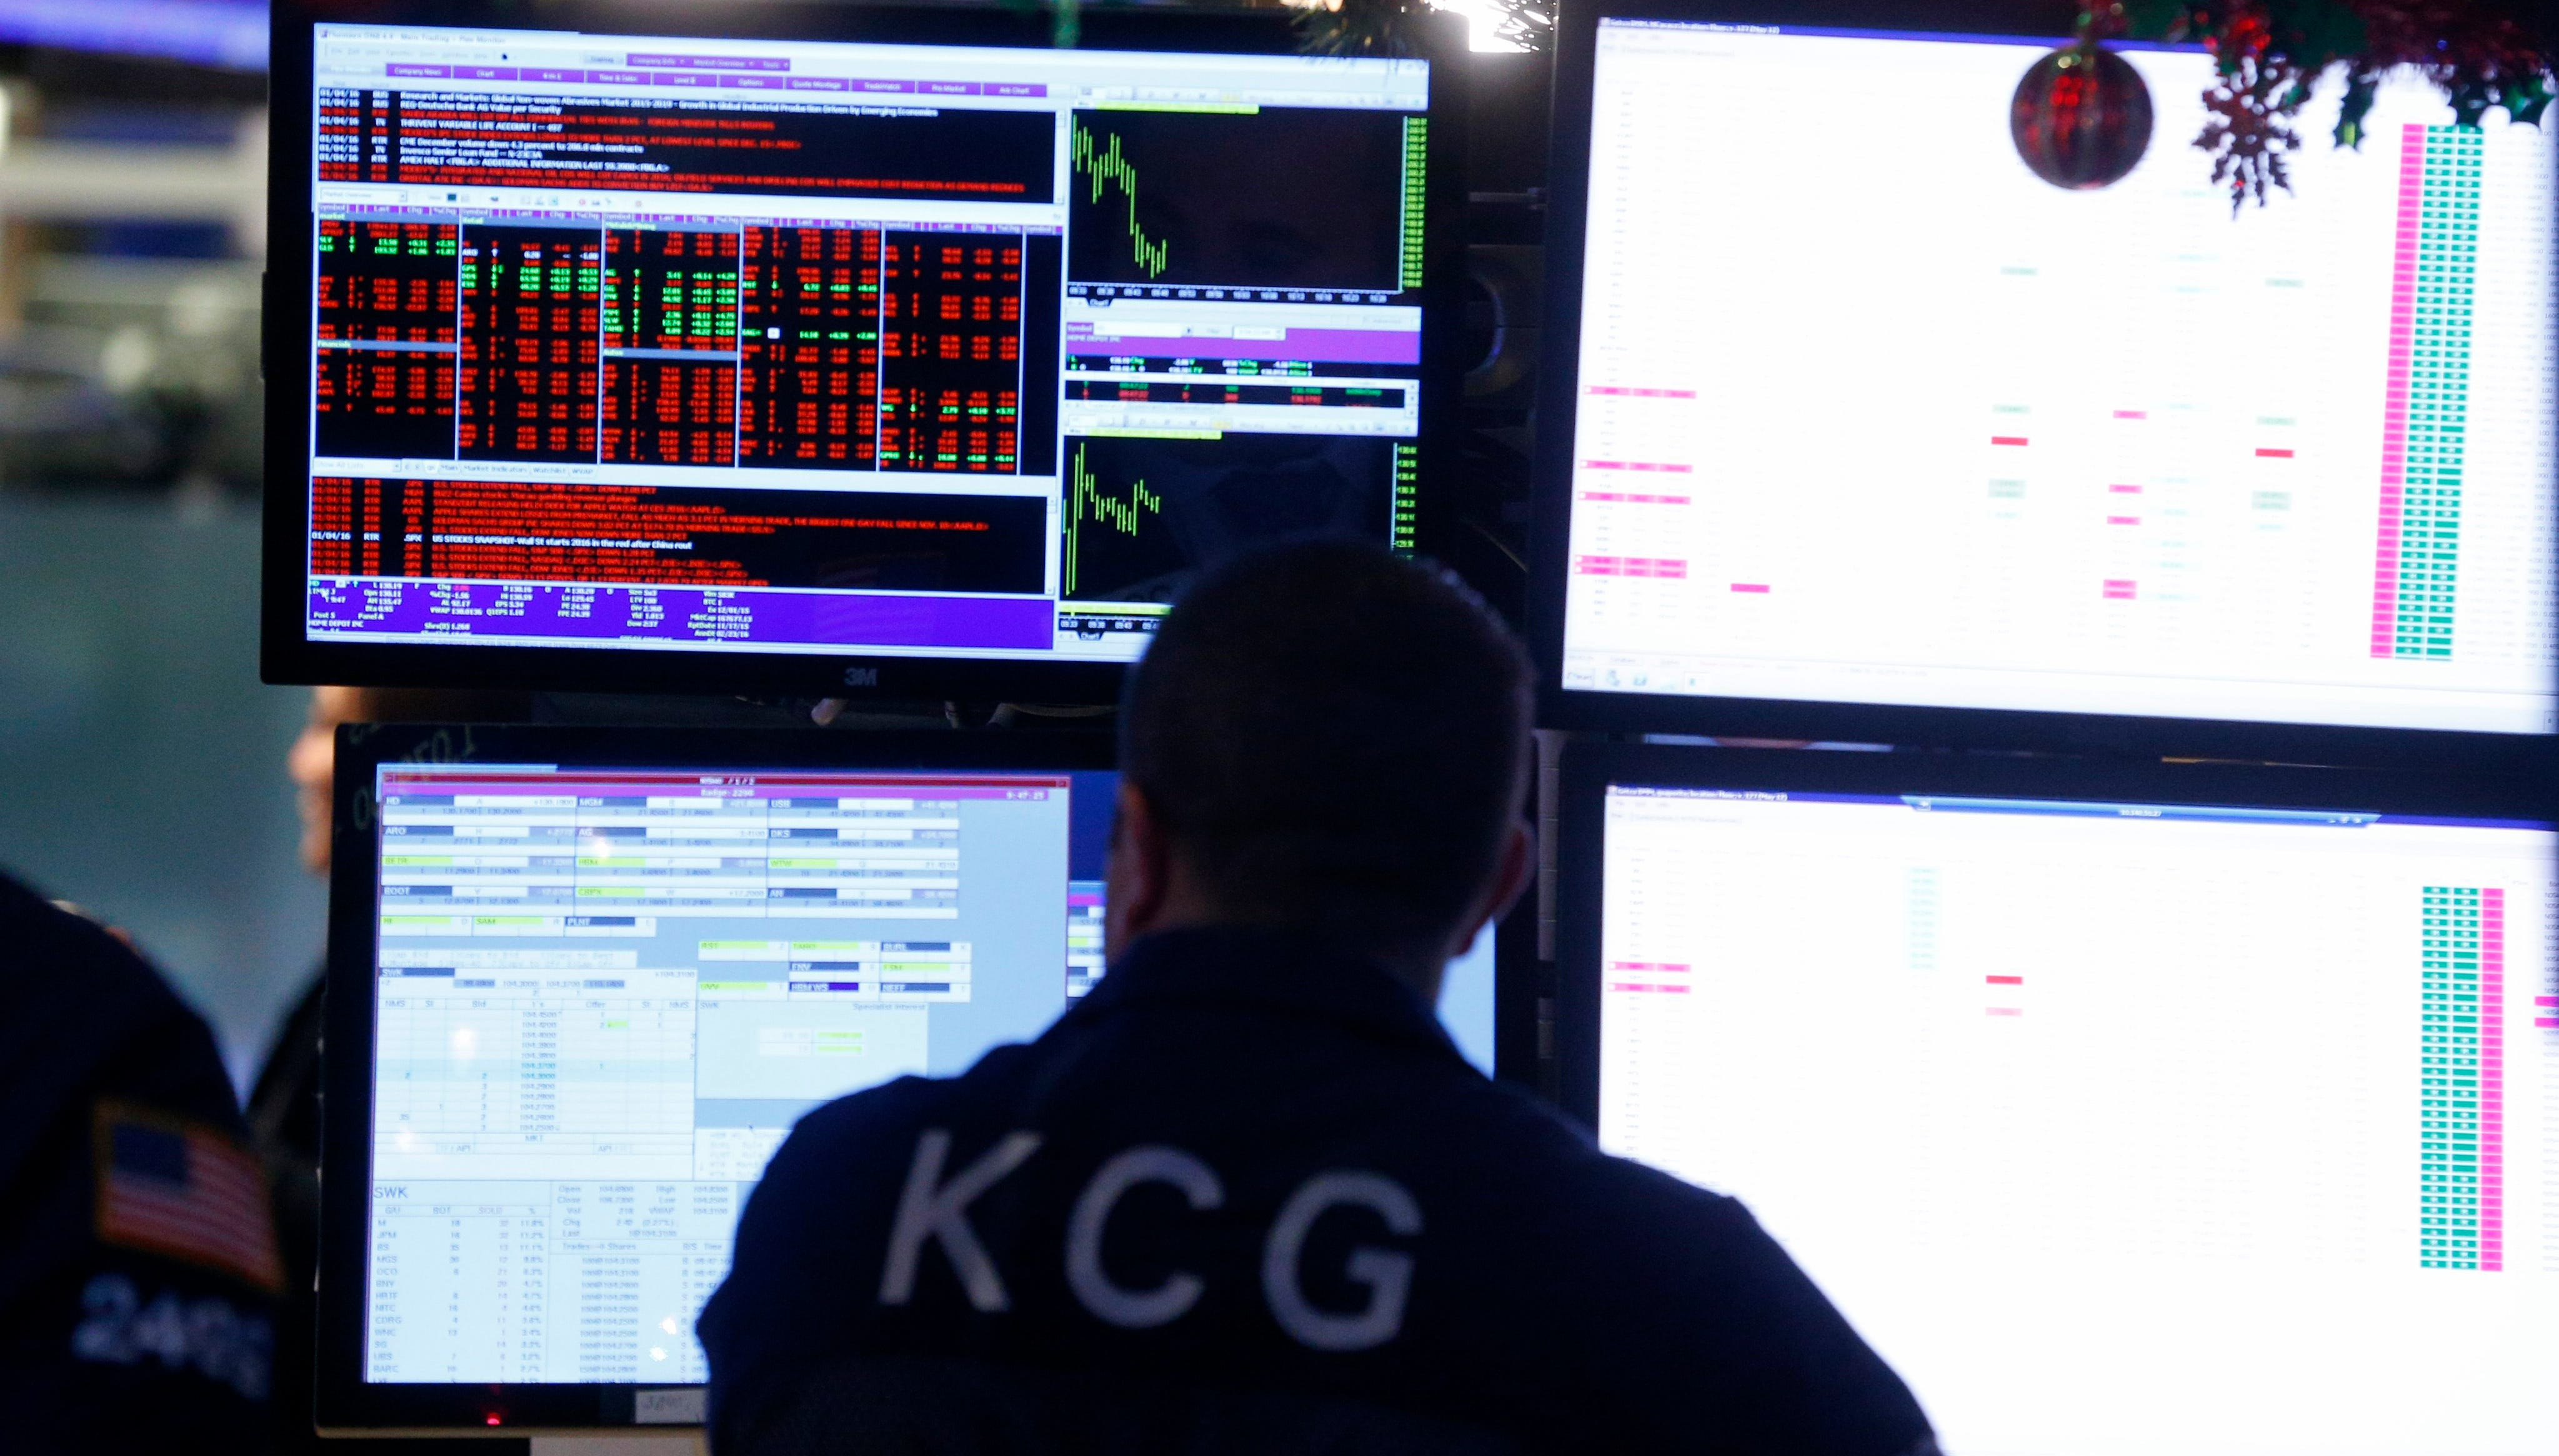 epa05087784 A trader works on the floor of the New York Stock Exchange (NYSE) at the start of the trading day in New York, New York, USA, 04 January 2016. Shares in New York followed earlier falls in Asia and Europe, with the Dow Jones Industrial Average index losing 2.2 per cent in early trading.  EPA/ANDREW GOMBERT ORG XMIT: AGX05